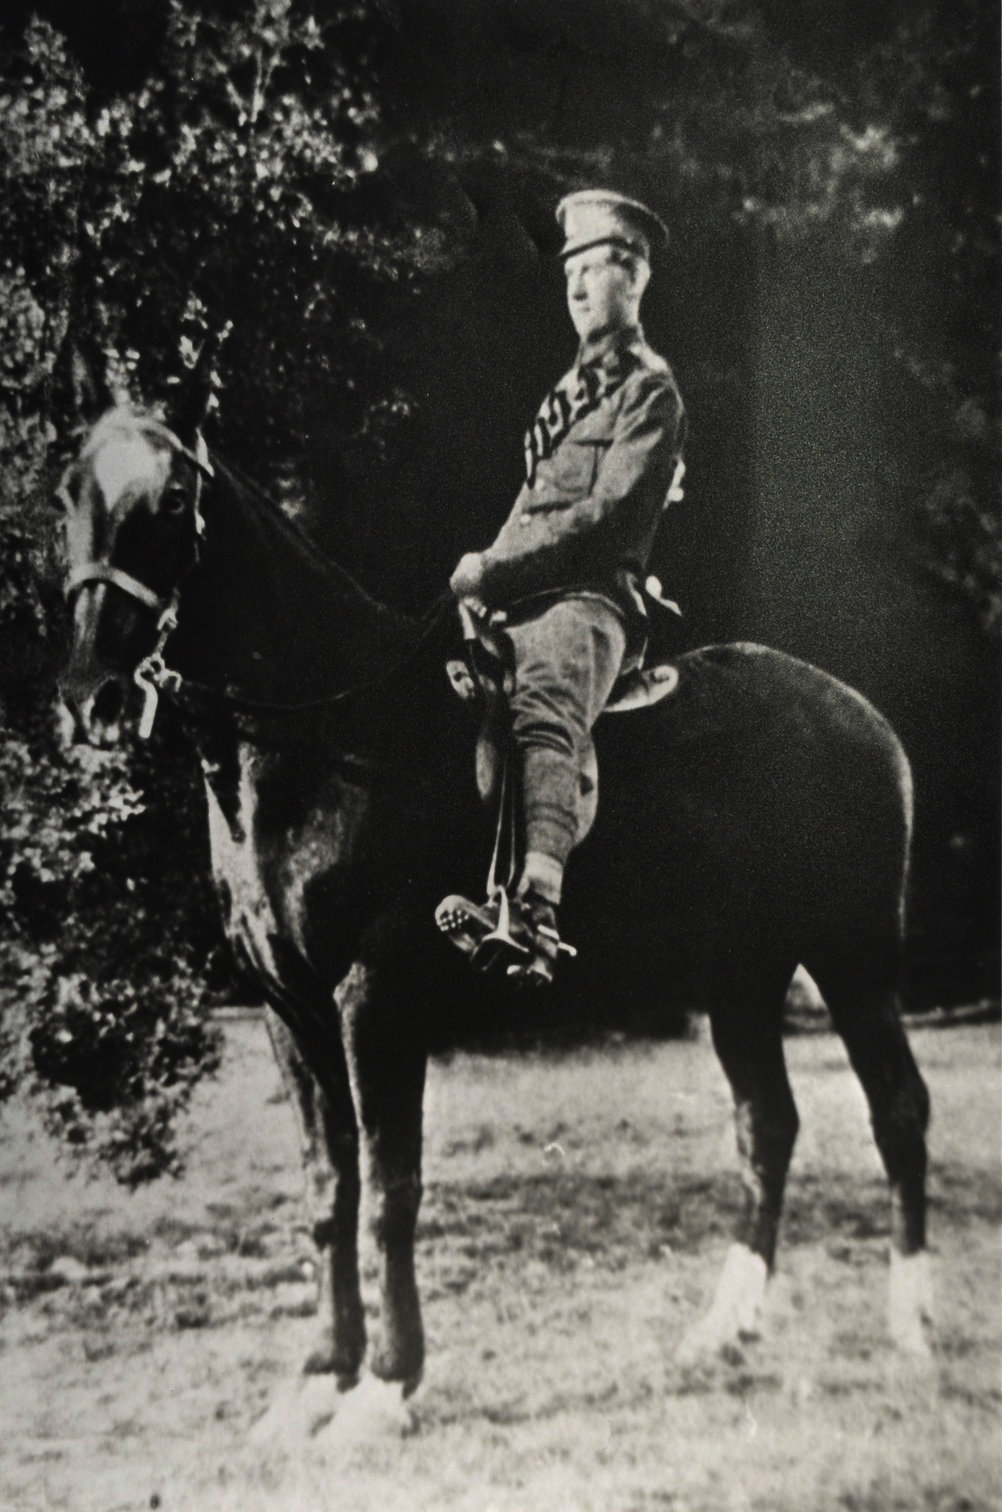 William Rose Townhill in uniform on a horse, 26/04/1915,  Europeana 1914- 1918 / Alan Townhill, CC BY-SA